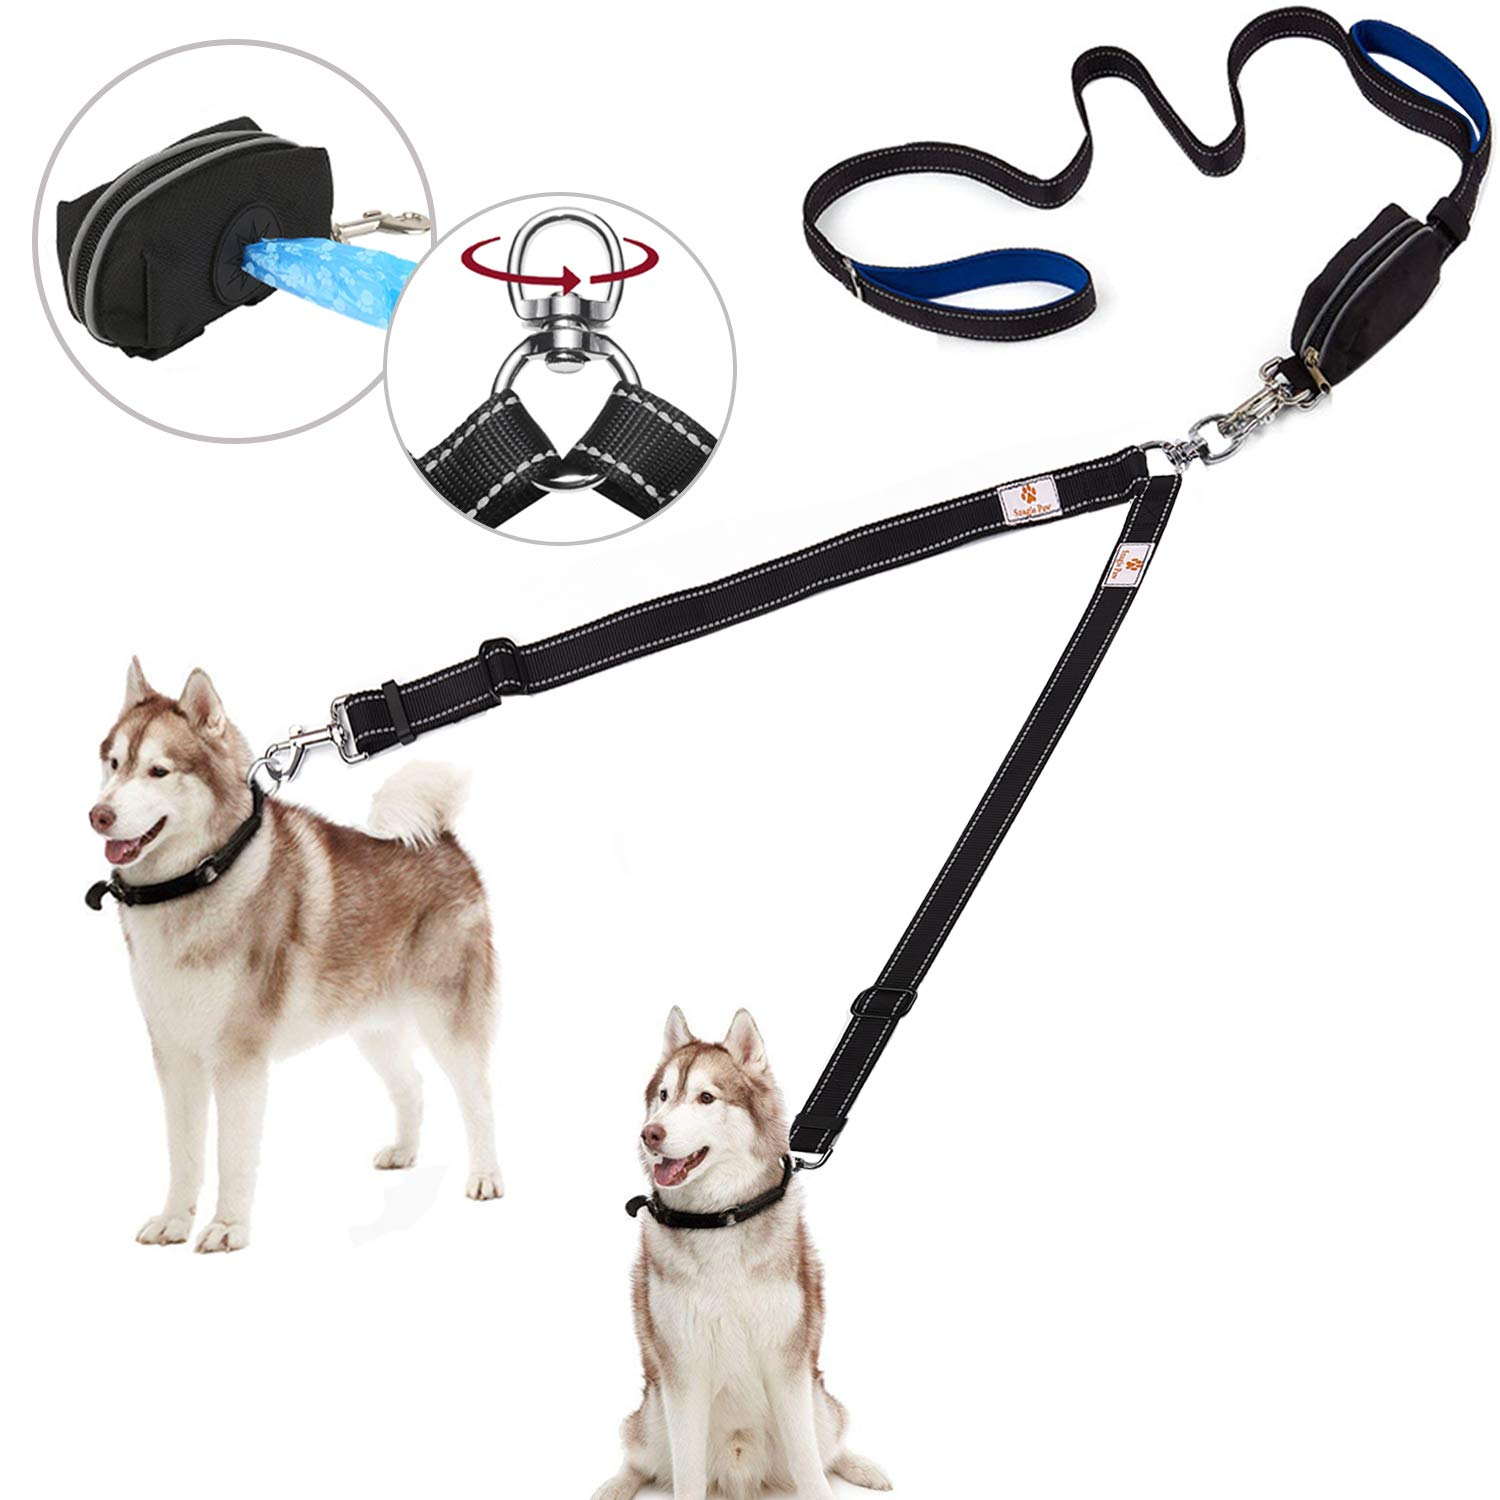 Snagle Paw Upgraded Double Dog Leash,2 Handle Dual Dog Leash for Large Dog Up to 180lbs,Tangle Free 2 Dog Walking Leash with Adjustable Reflective Lead, Bonus Pet Waste Bag Dispenser by Snagle Paw